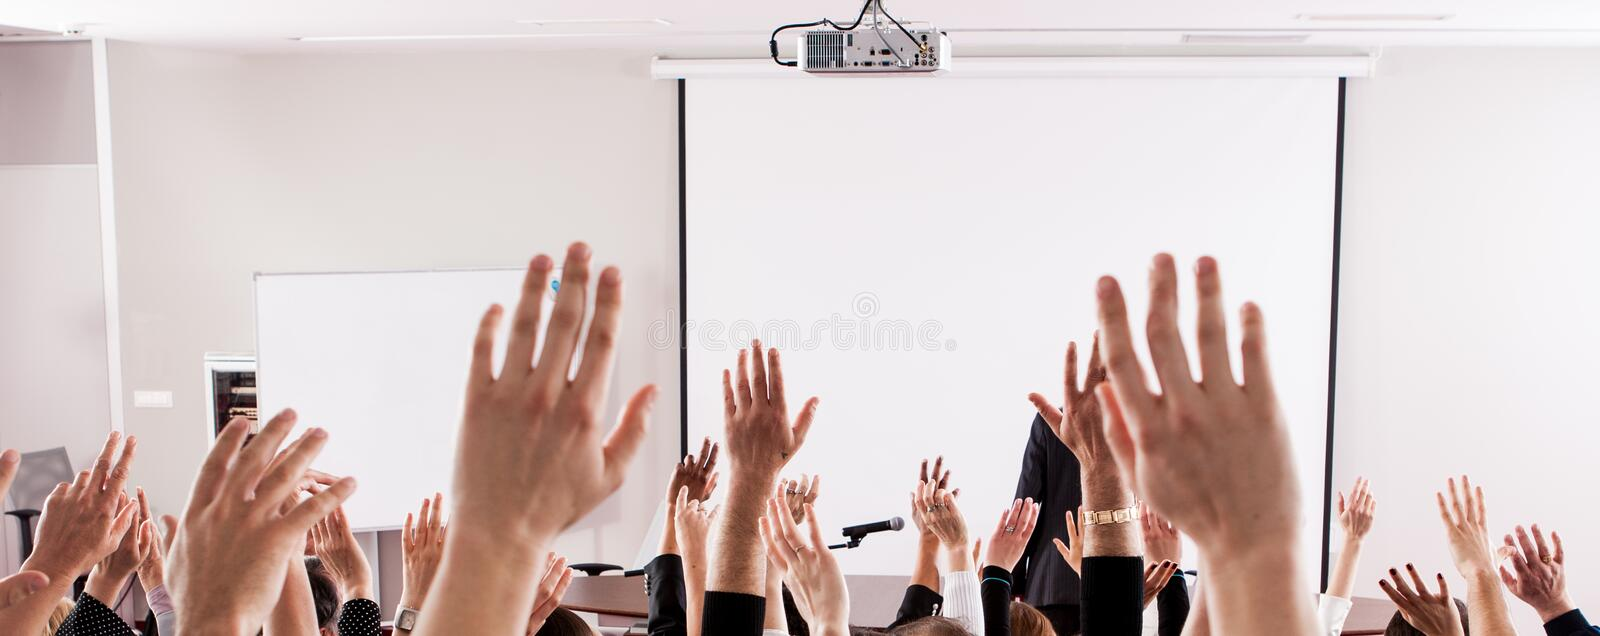 Large group of seminar audience in class room royalty free stock photography